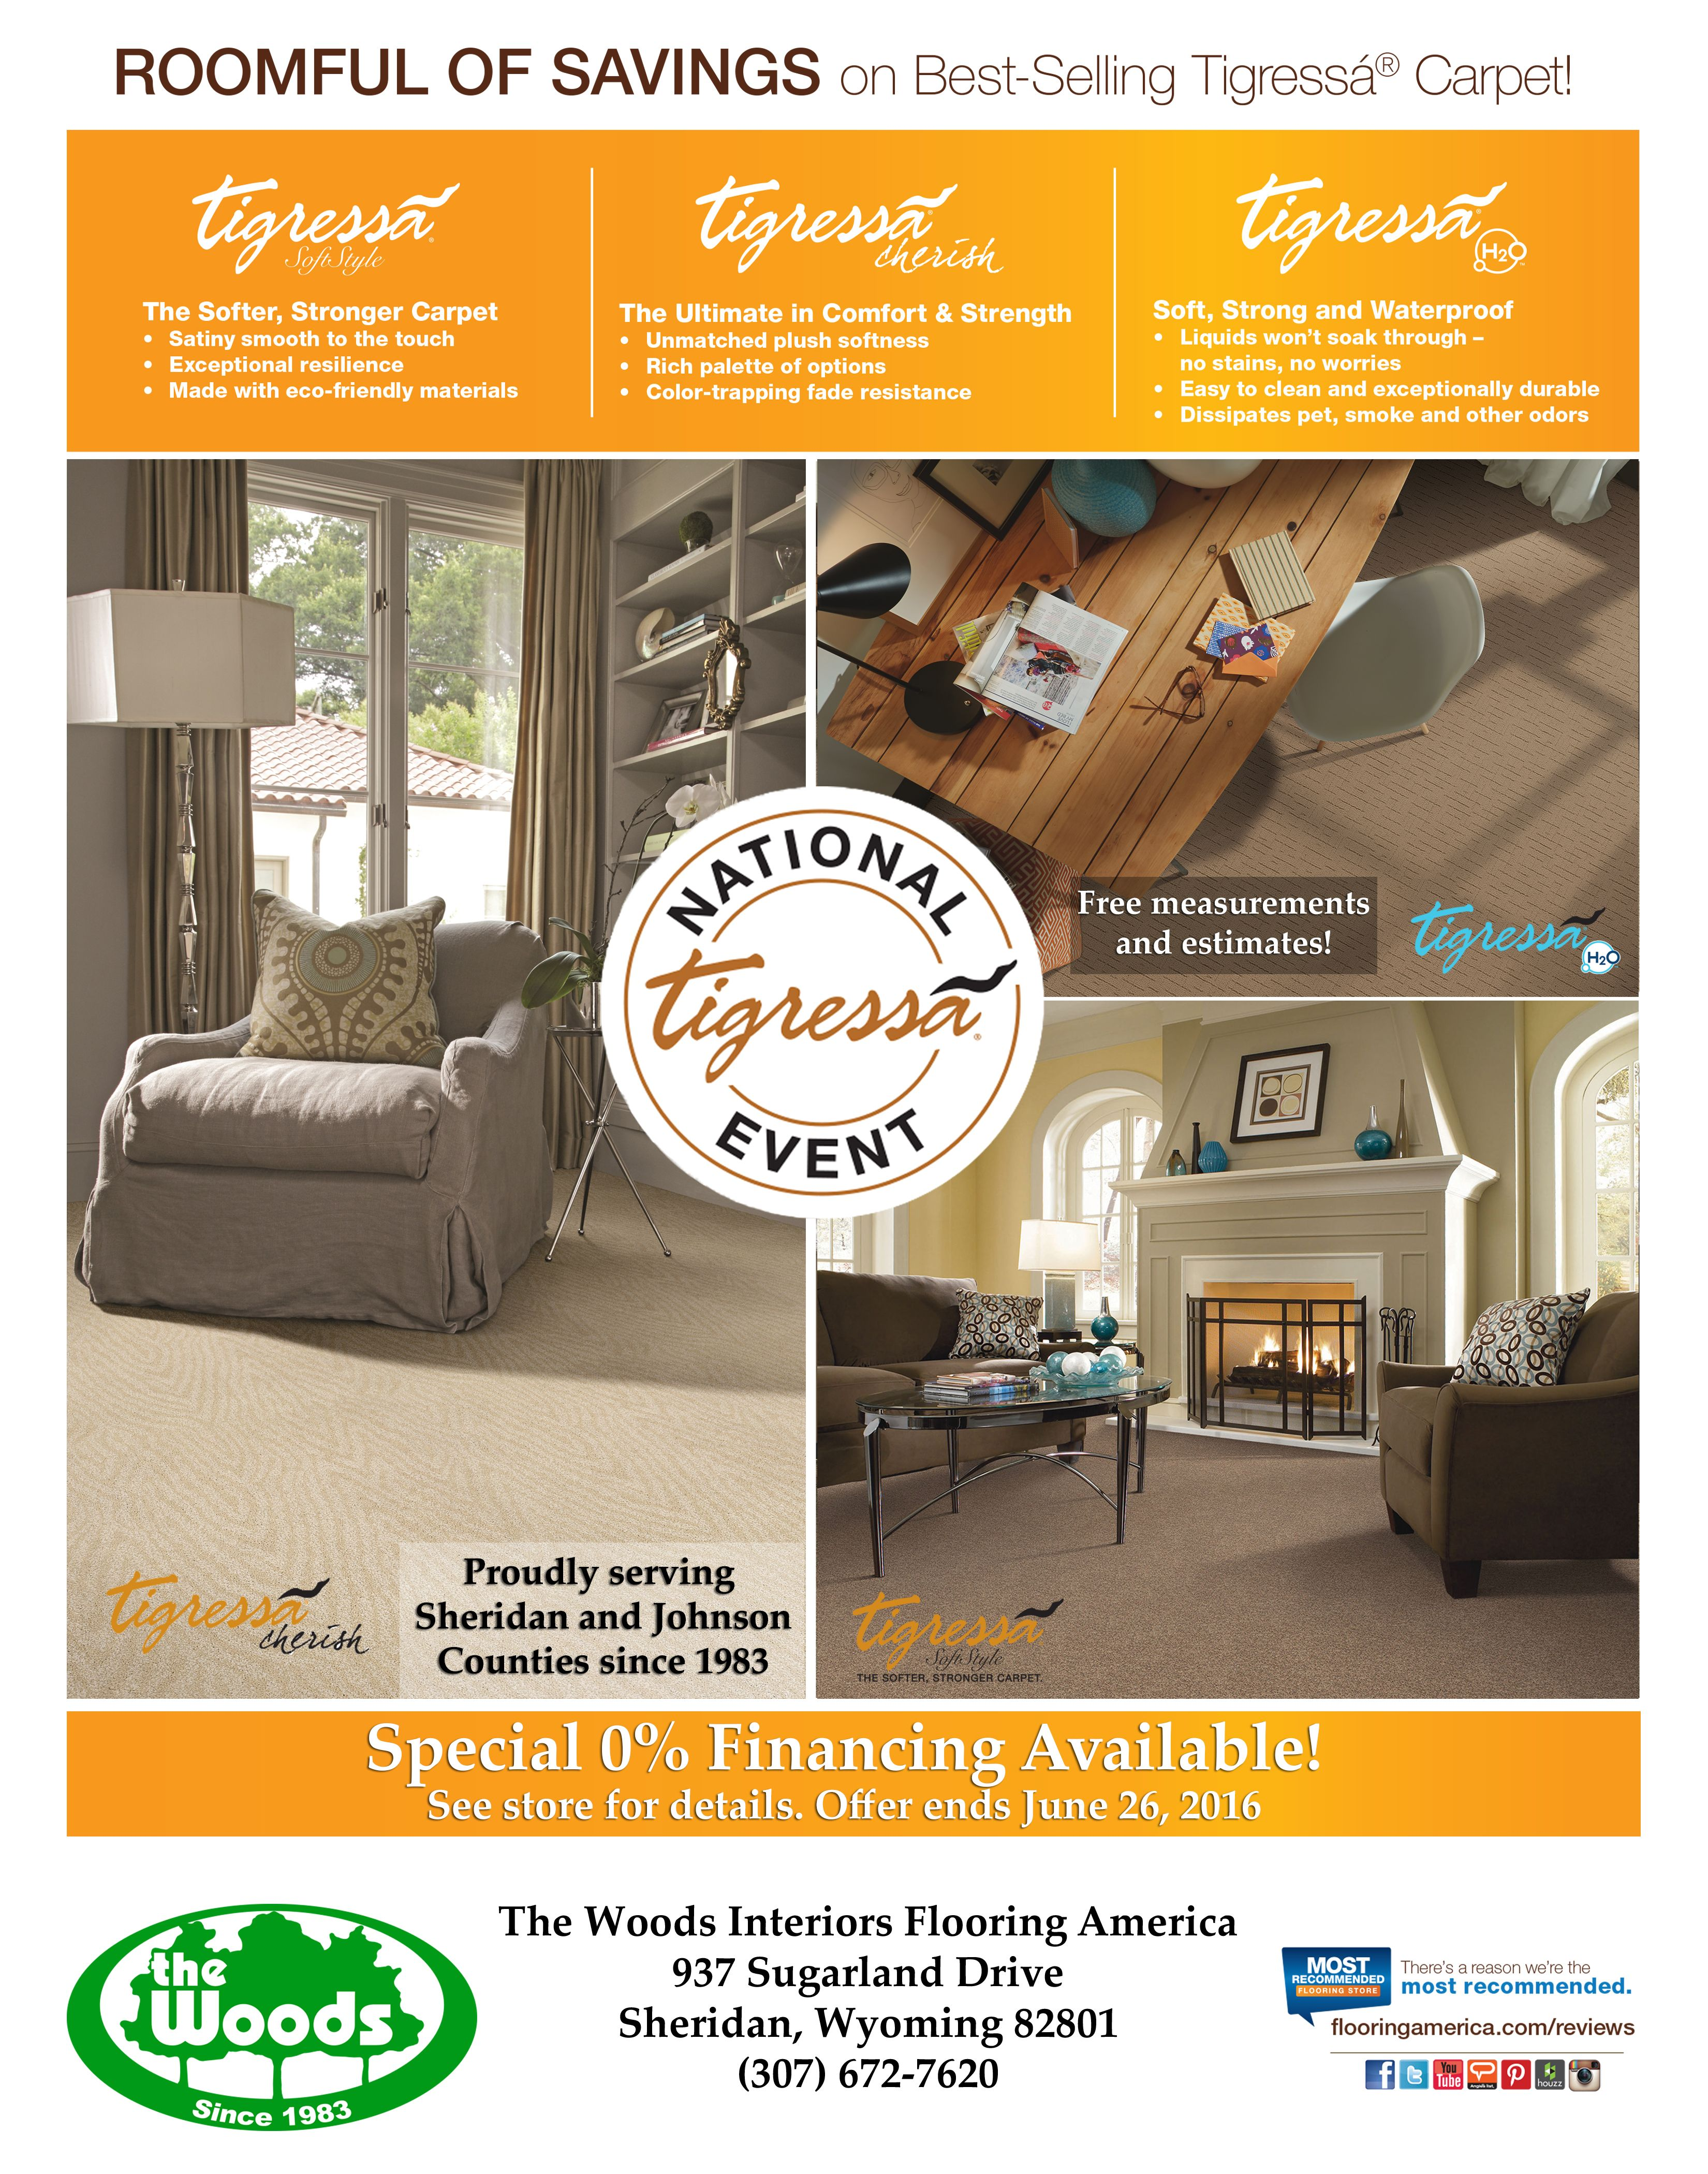 Looking To Update The Interior Of Your Home The Woods Interiors Is Currently Offering The Deal Of The Season On Select Tig Money Saver Wood Interiors Flooring